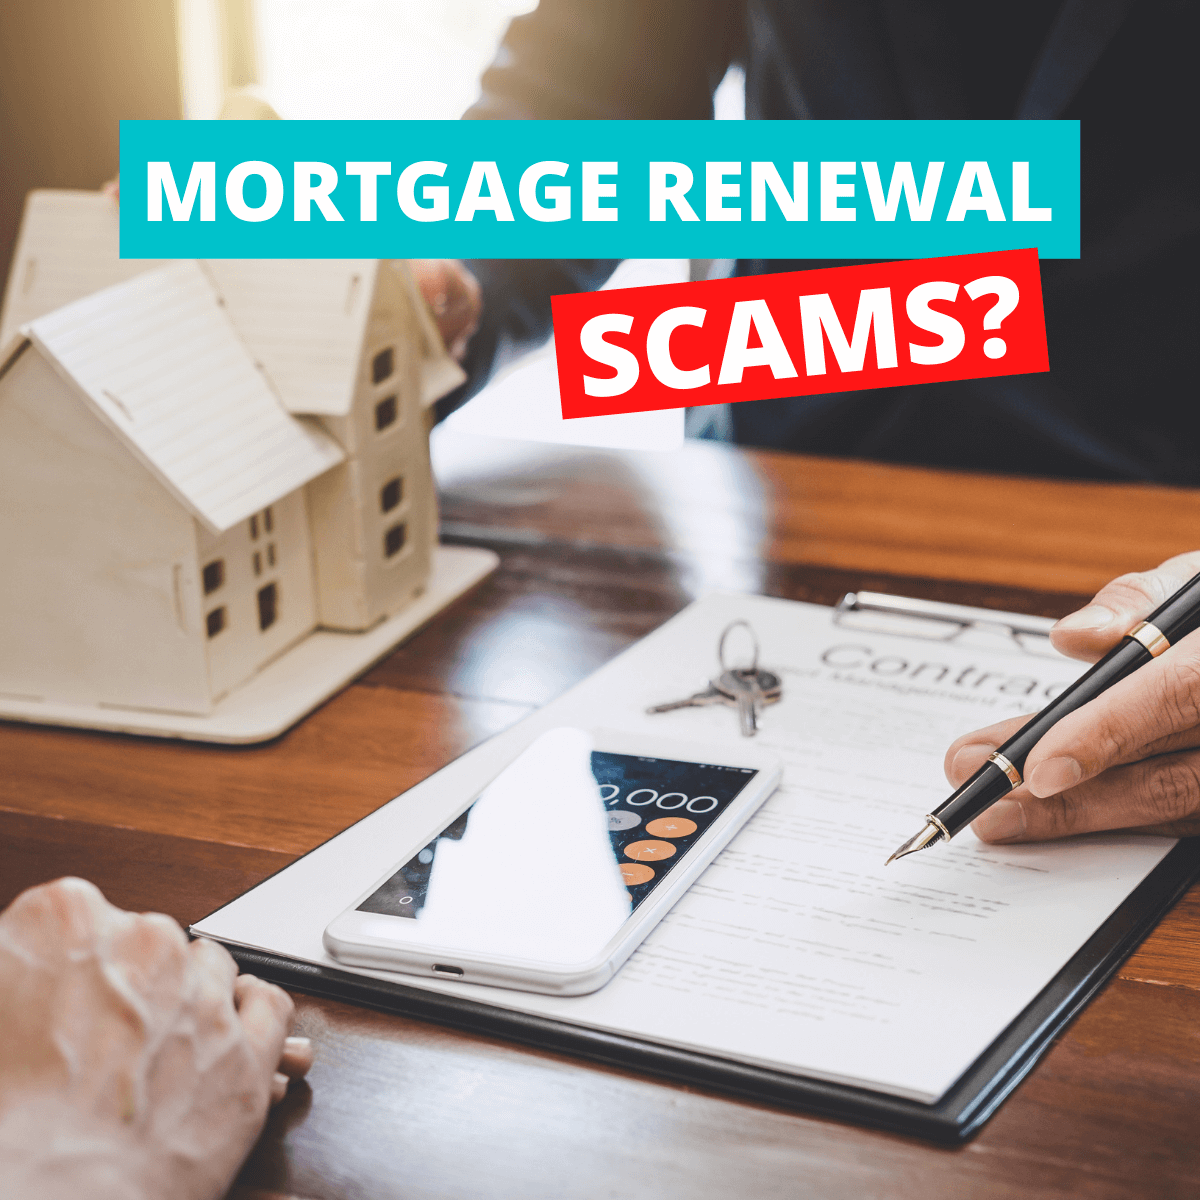 How to Avoid Mortgage Renewal Scams